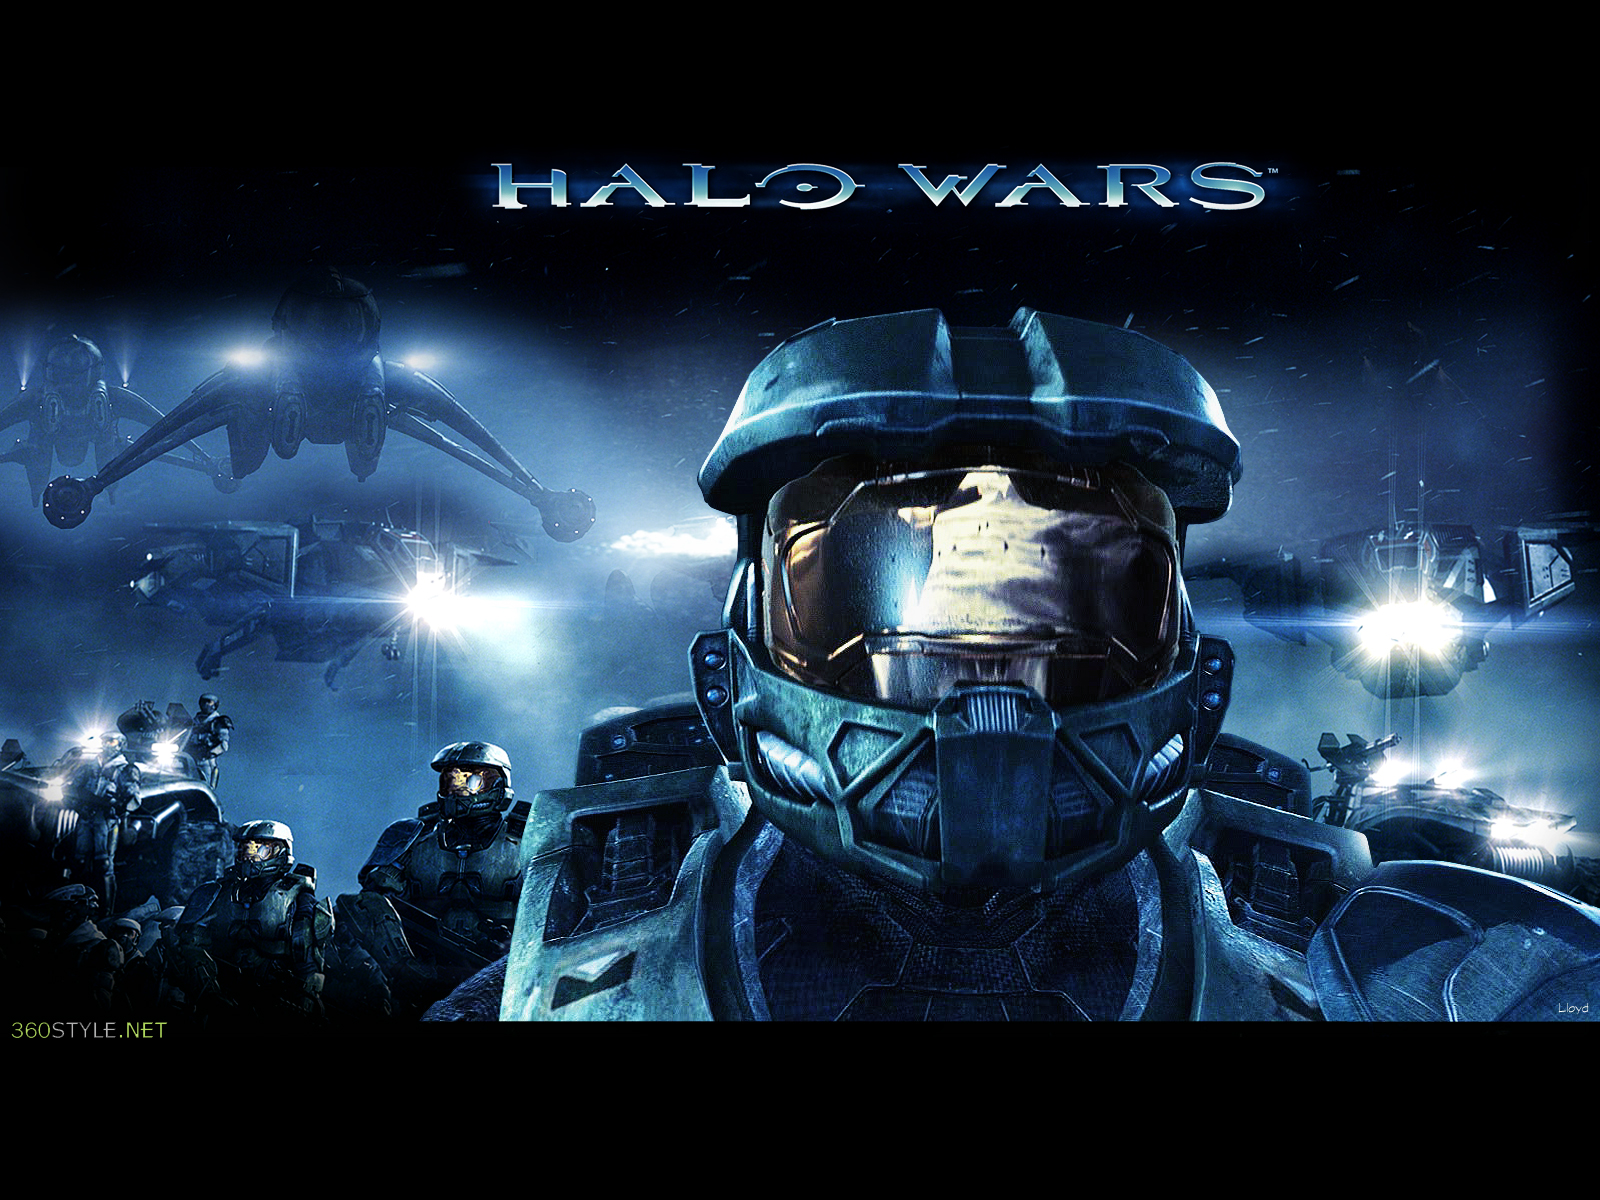 HD wallpapers: Halo Wallpapers